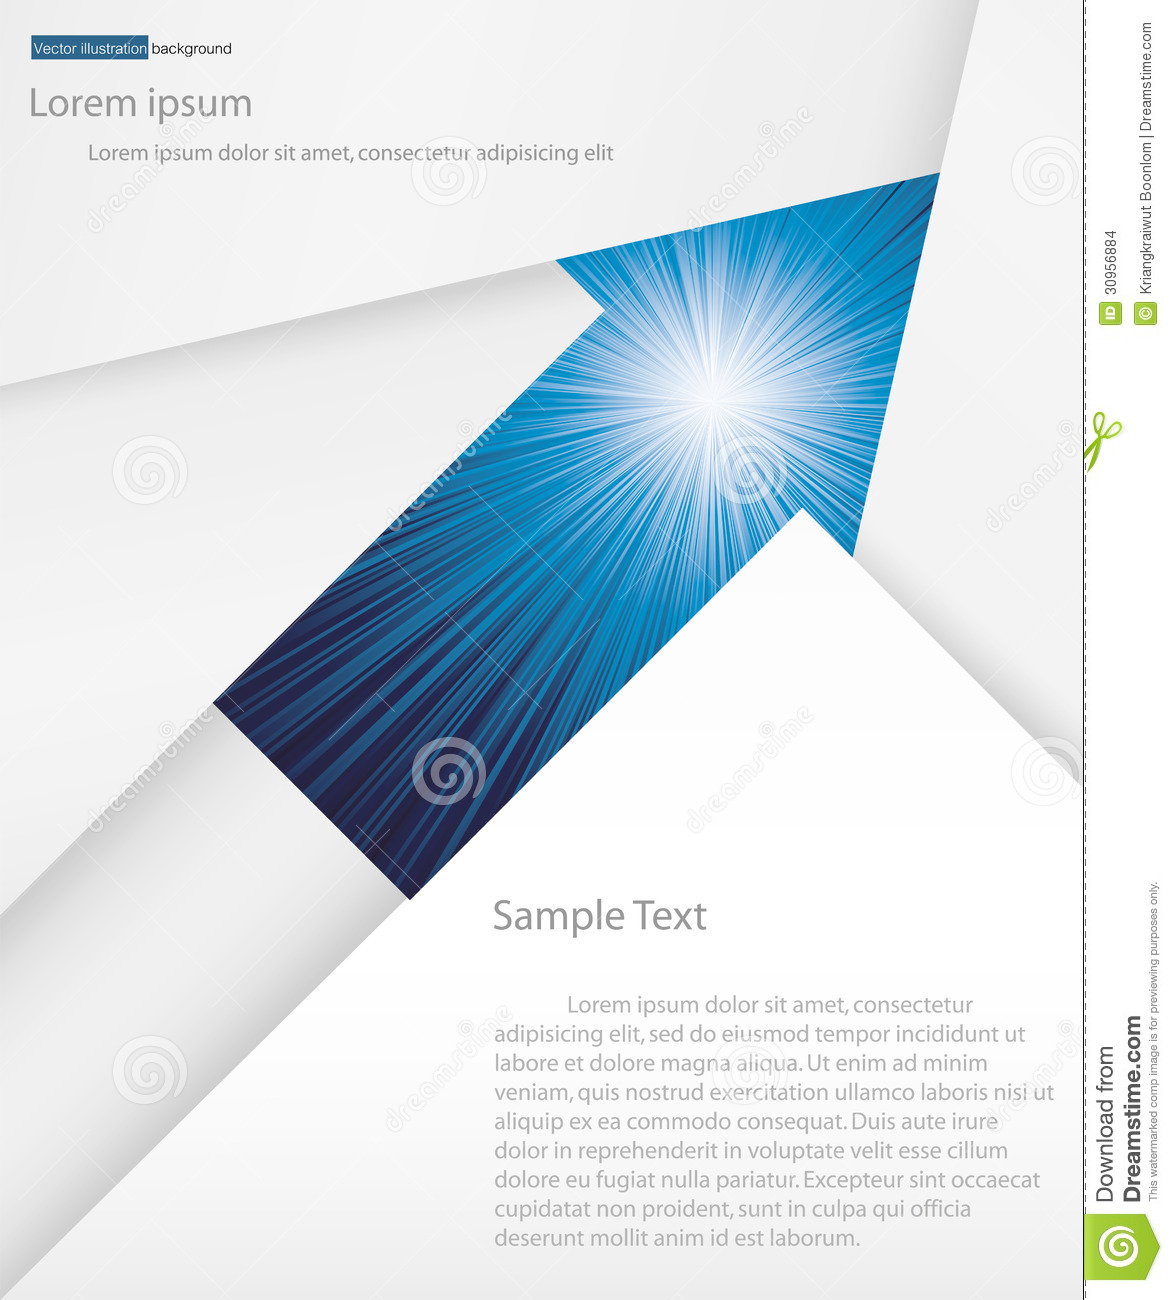 Abstract Examples Of Vector Spaces Wallpaper